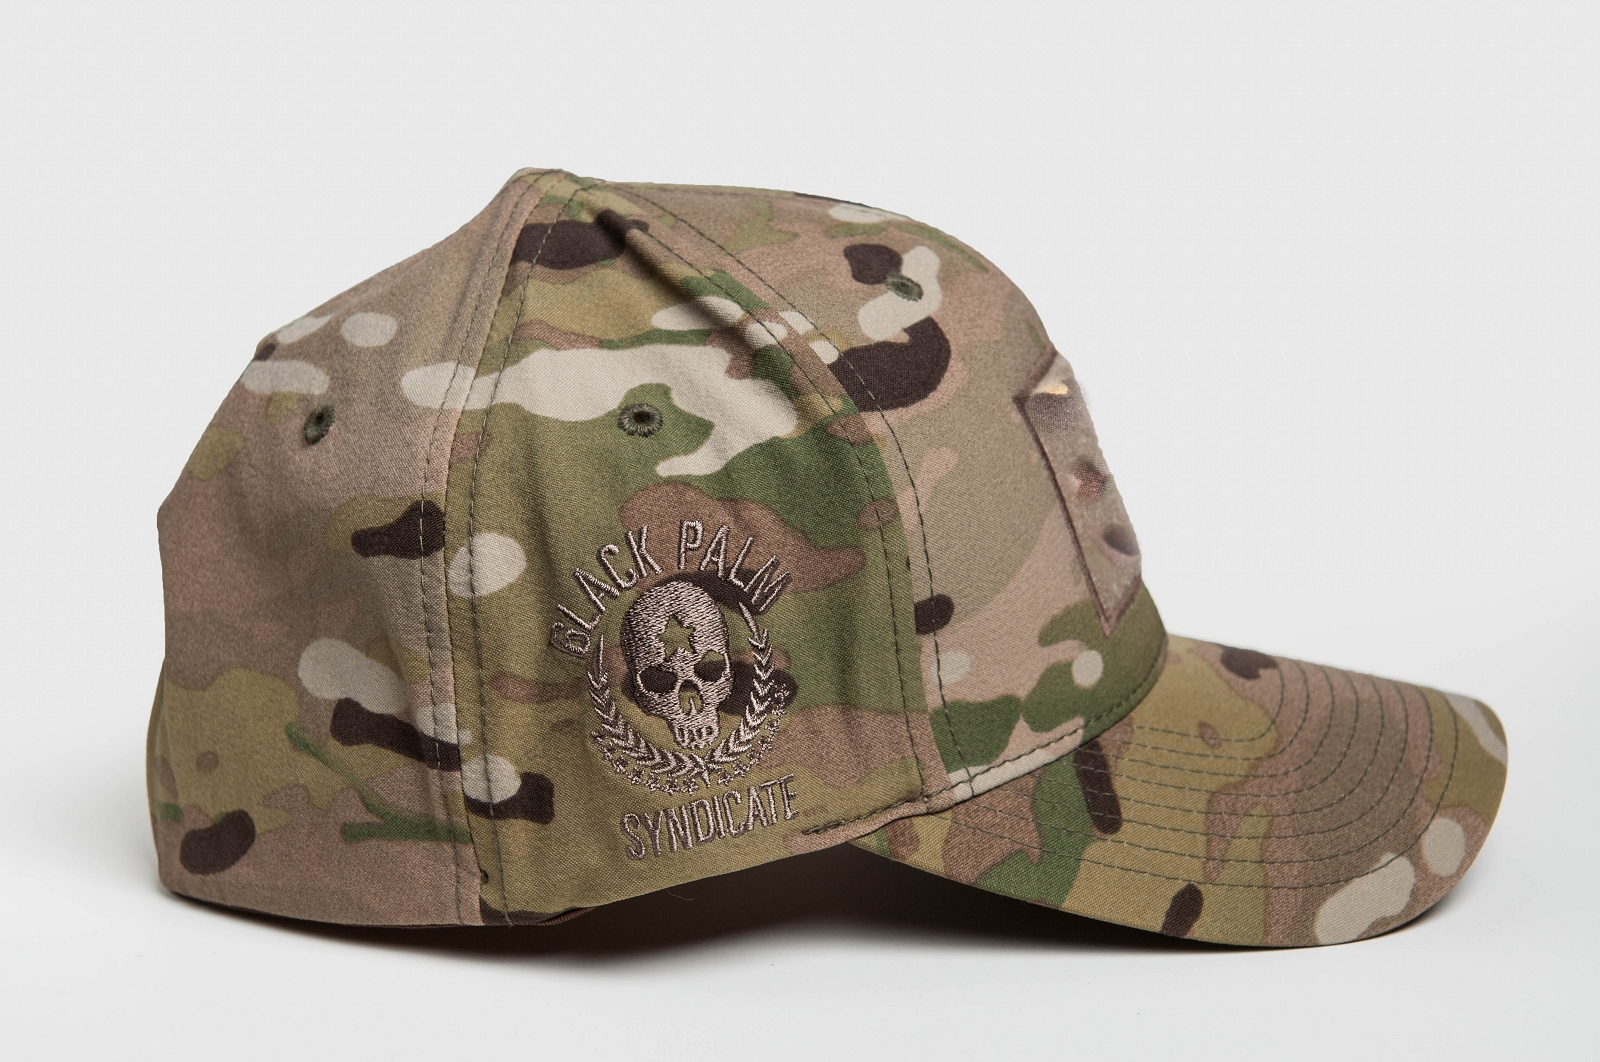 7453ccdc35a Black Palm Syndicate - One Cap To Rule Them All™ Soft Shell MultiCam Hat